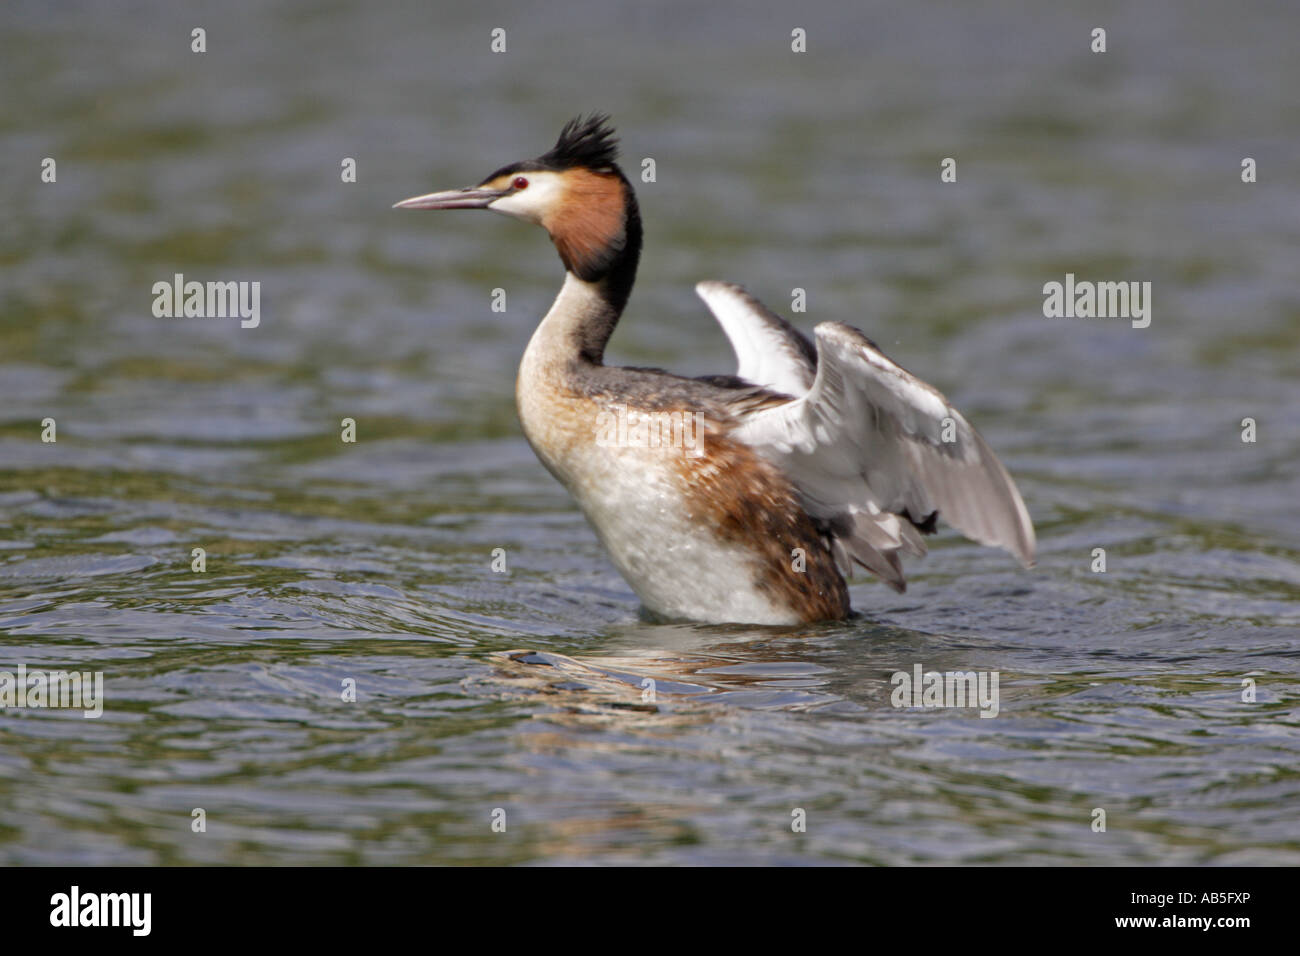 Great Crested Grebe in summer plumage flapping its wings - Stock Image